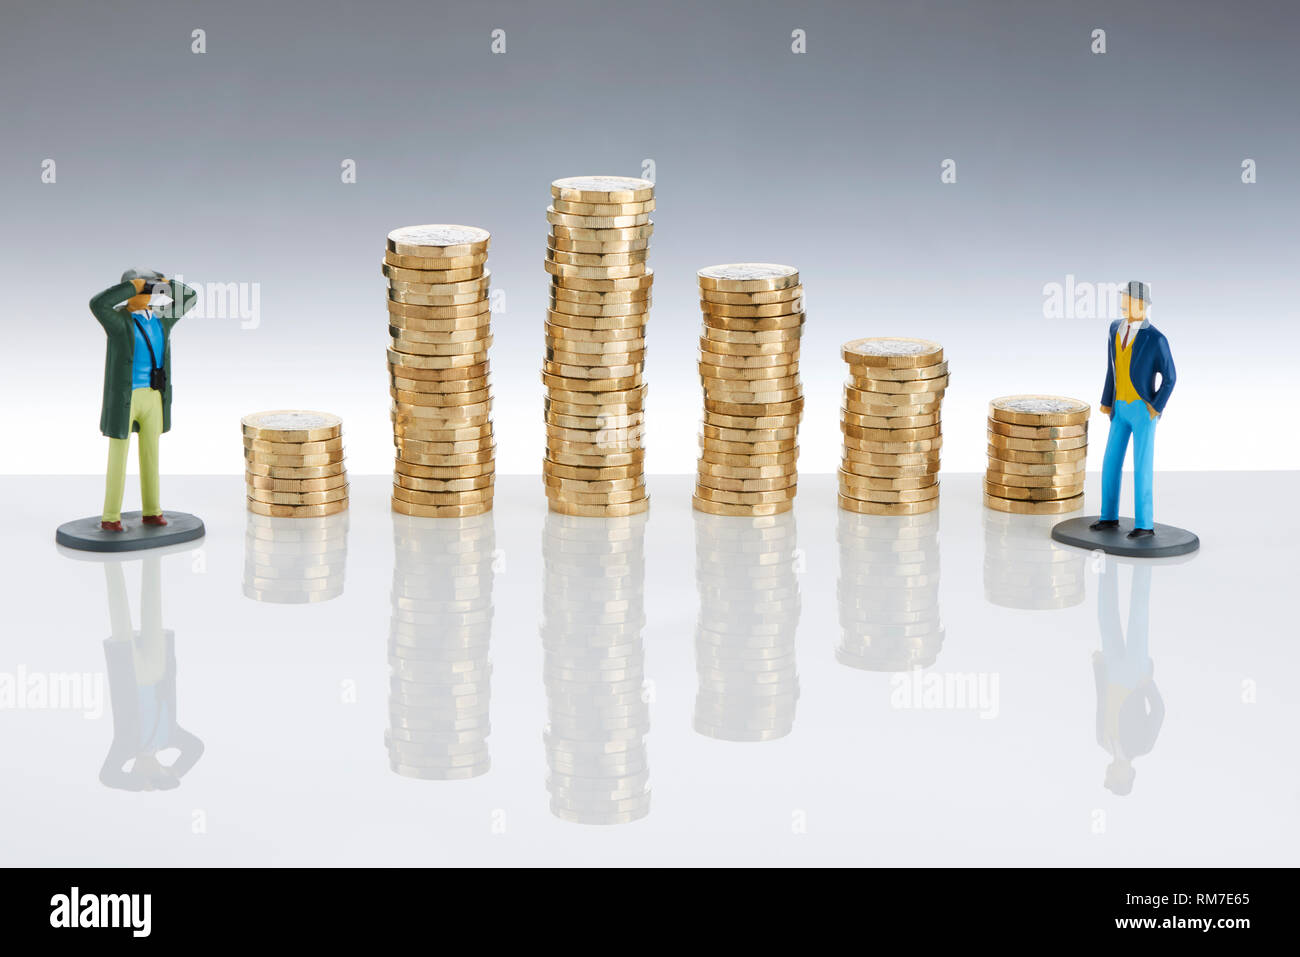 Stacks £1 Pounds with Model Men Looking on Stock Photo